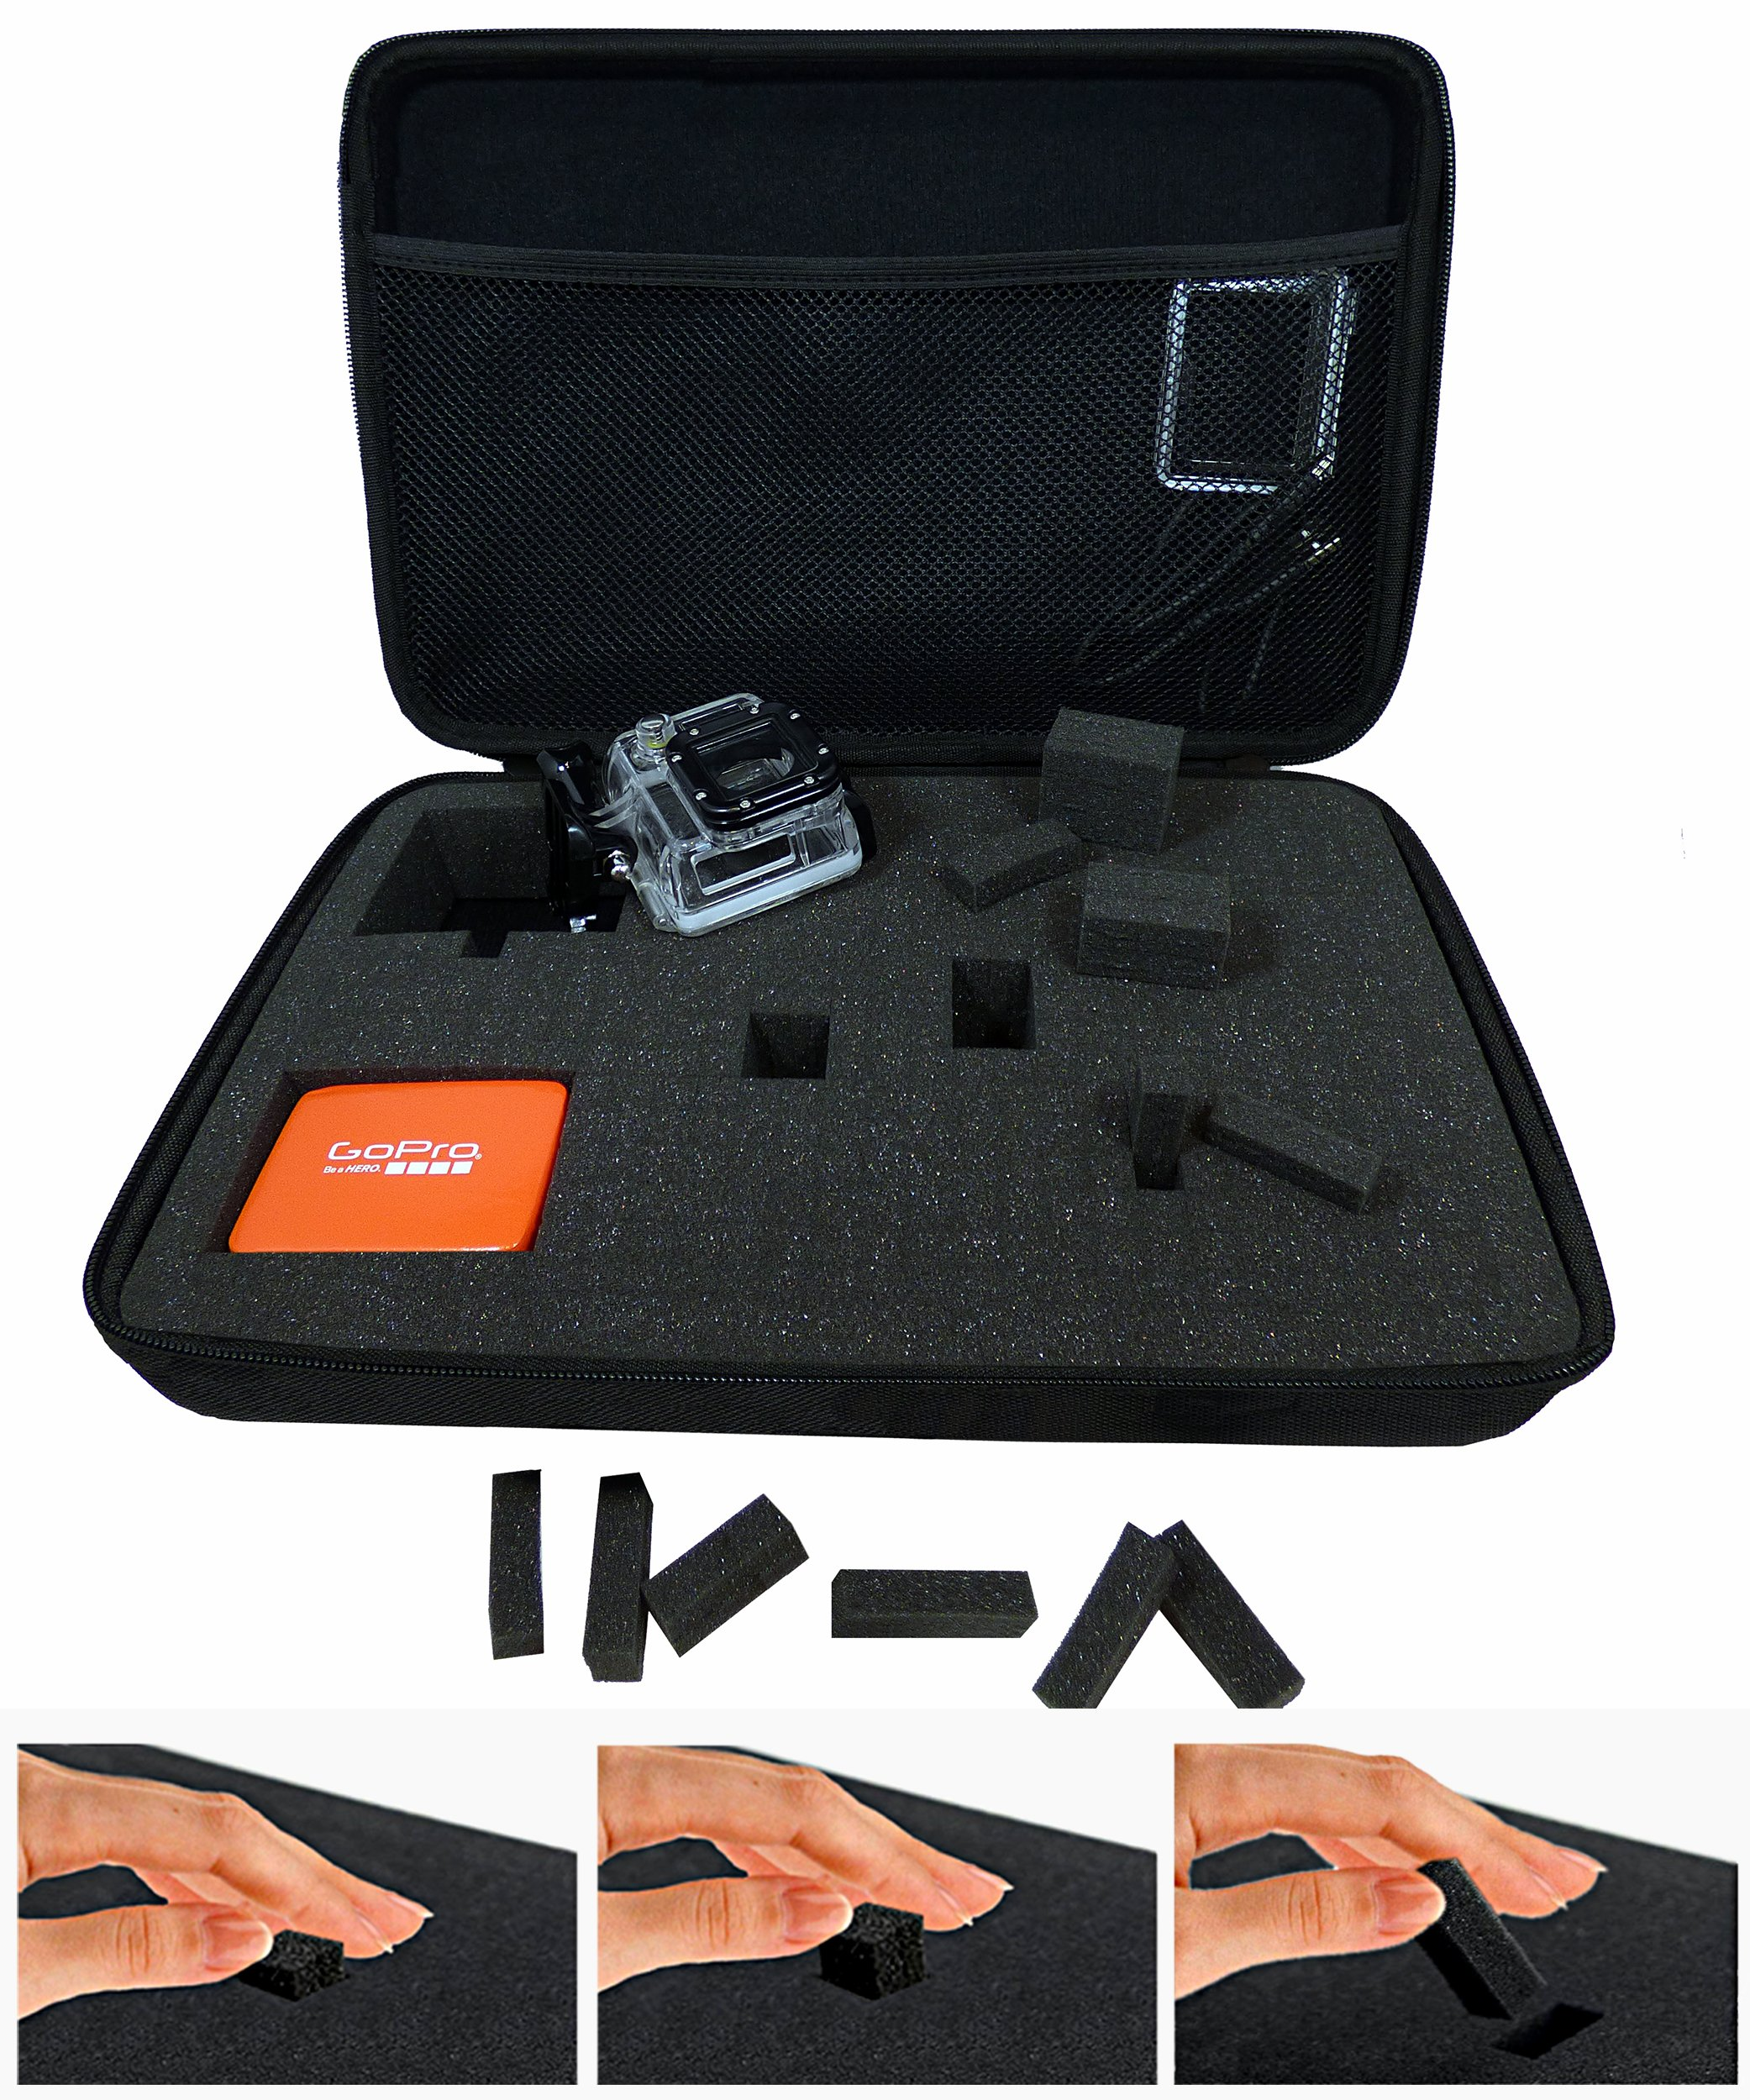 GoPro Camera Case Customized for GoPro Hero 5/4/3+/3/2/1 and Accessories - Great for Travel & Equipment Storage, Shockproof & Weather Protection, Best GoPro Camcorder Cases - Extra Large